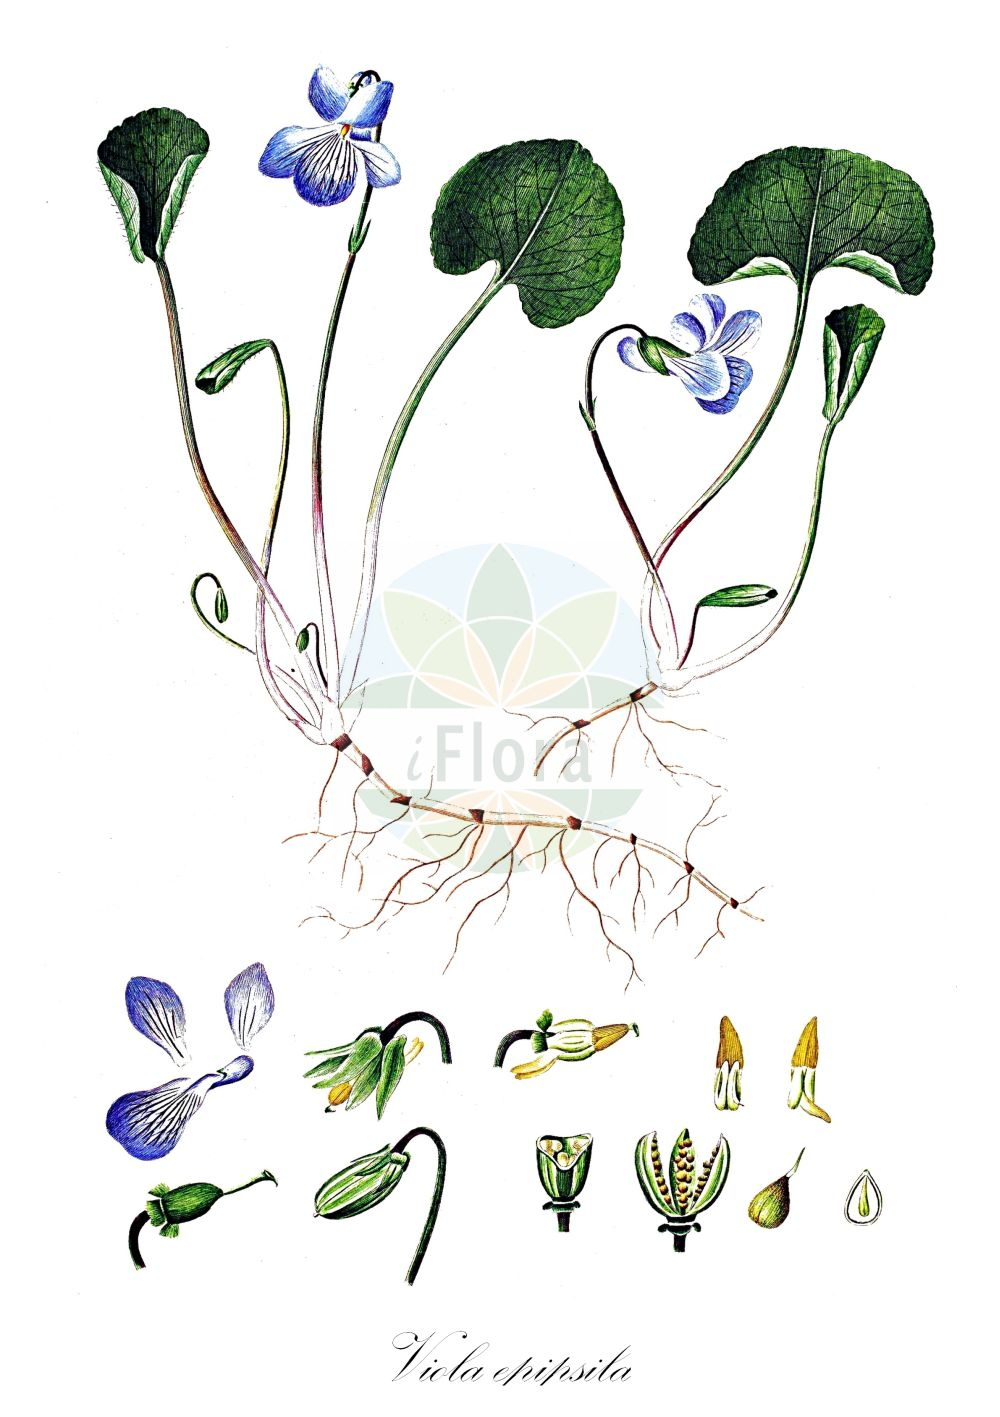 Historische Abbildung von Viola epipsila (Torf-Veilchen - Dwarf Marsh Violet). Das Bild zeigt Blatt, Bluete, Frucht und Same. ---- Historical Drawing of Viola epipsila (Torf-Veilchen - Dwarf Marsh Violet).The image is showing leaf, flower, fruit and seed. (Viola epipsila,Torf-Veilchen,Dwarf Marsh Violet,Viola suecica,Viola,Veilchen,violet,Violaceae,Veilchengewaechse,Violet family,Blatt,Bluete,Frucht,Same,leaf,flower,fruit,seed,Oeder (1761-1883))